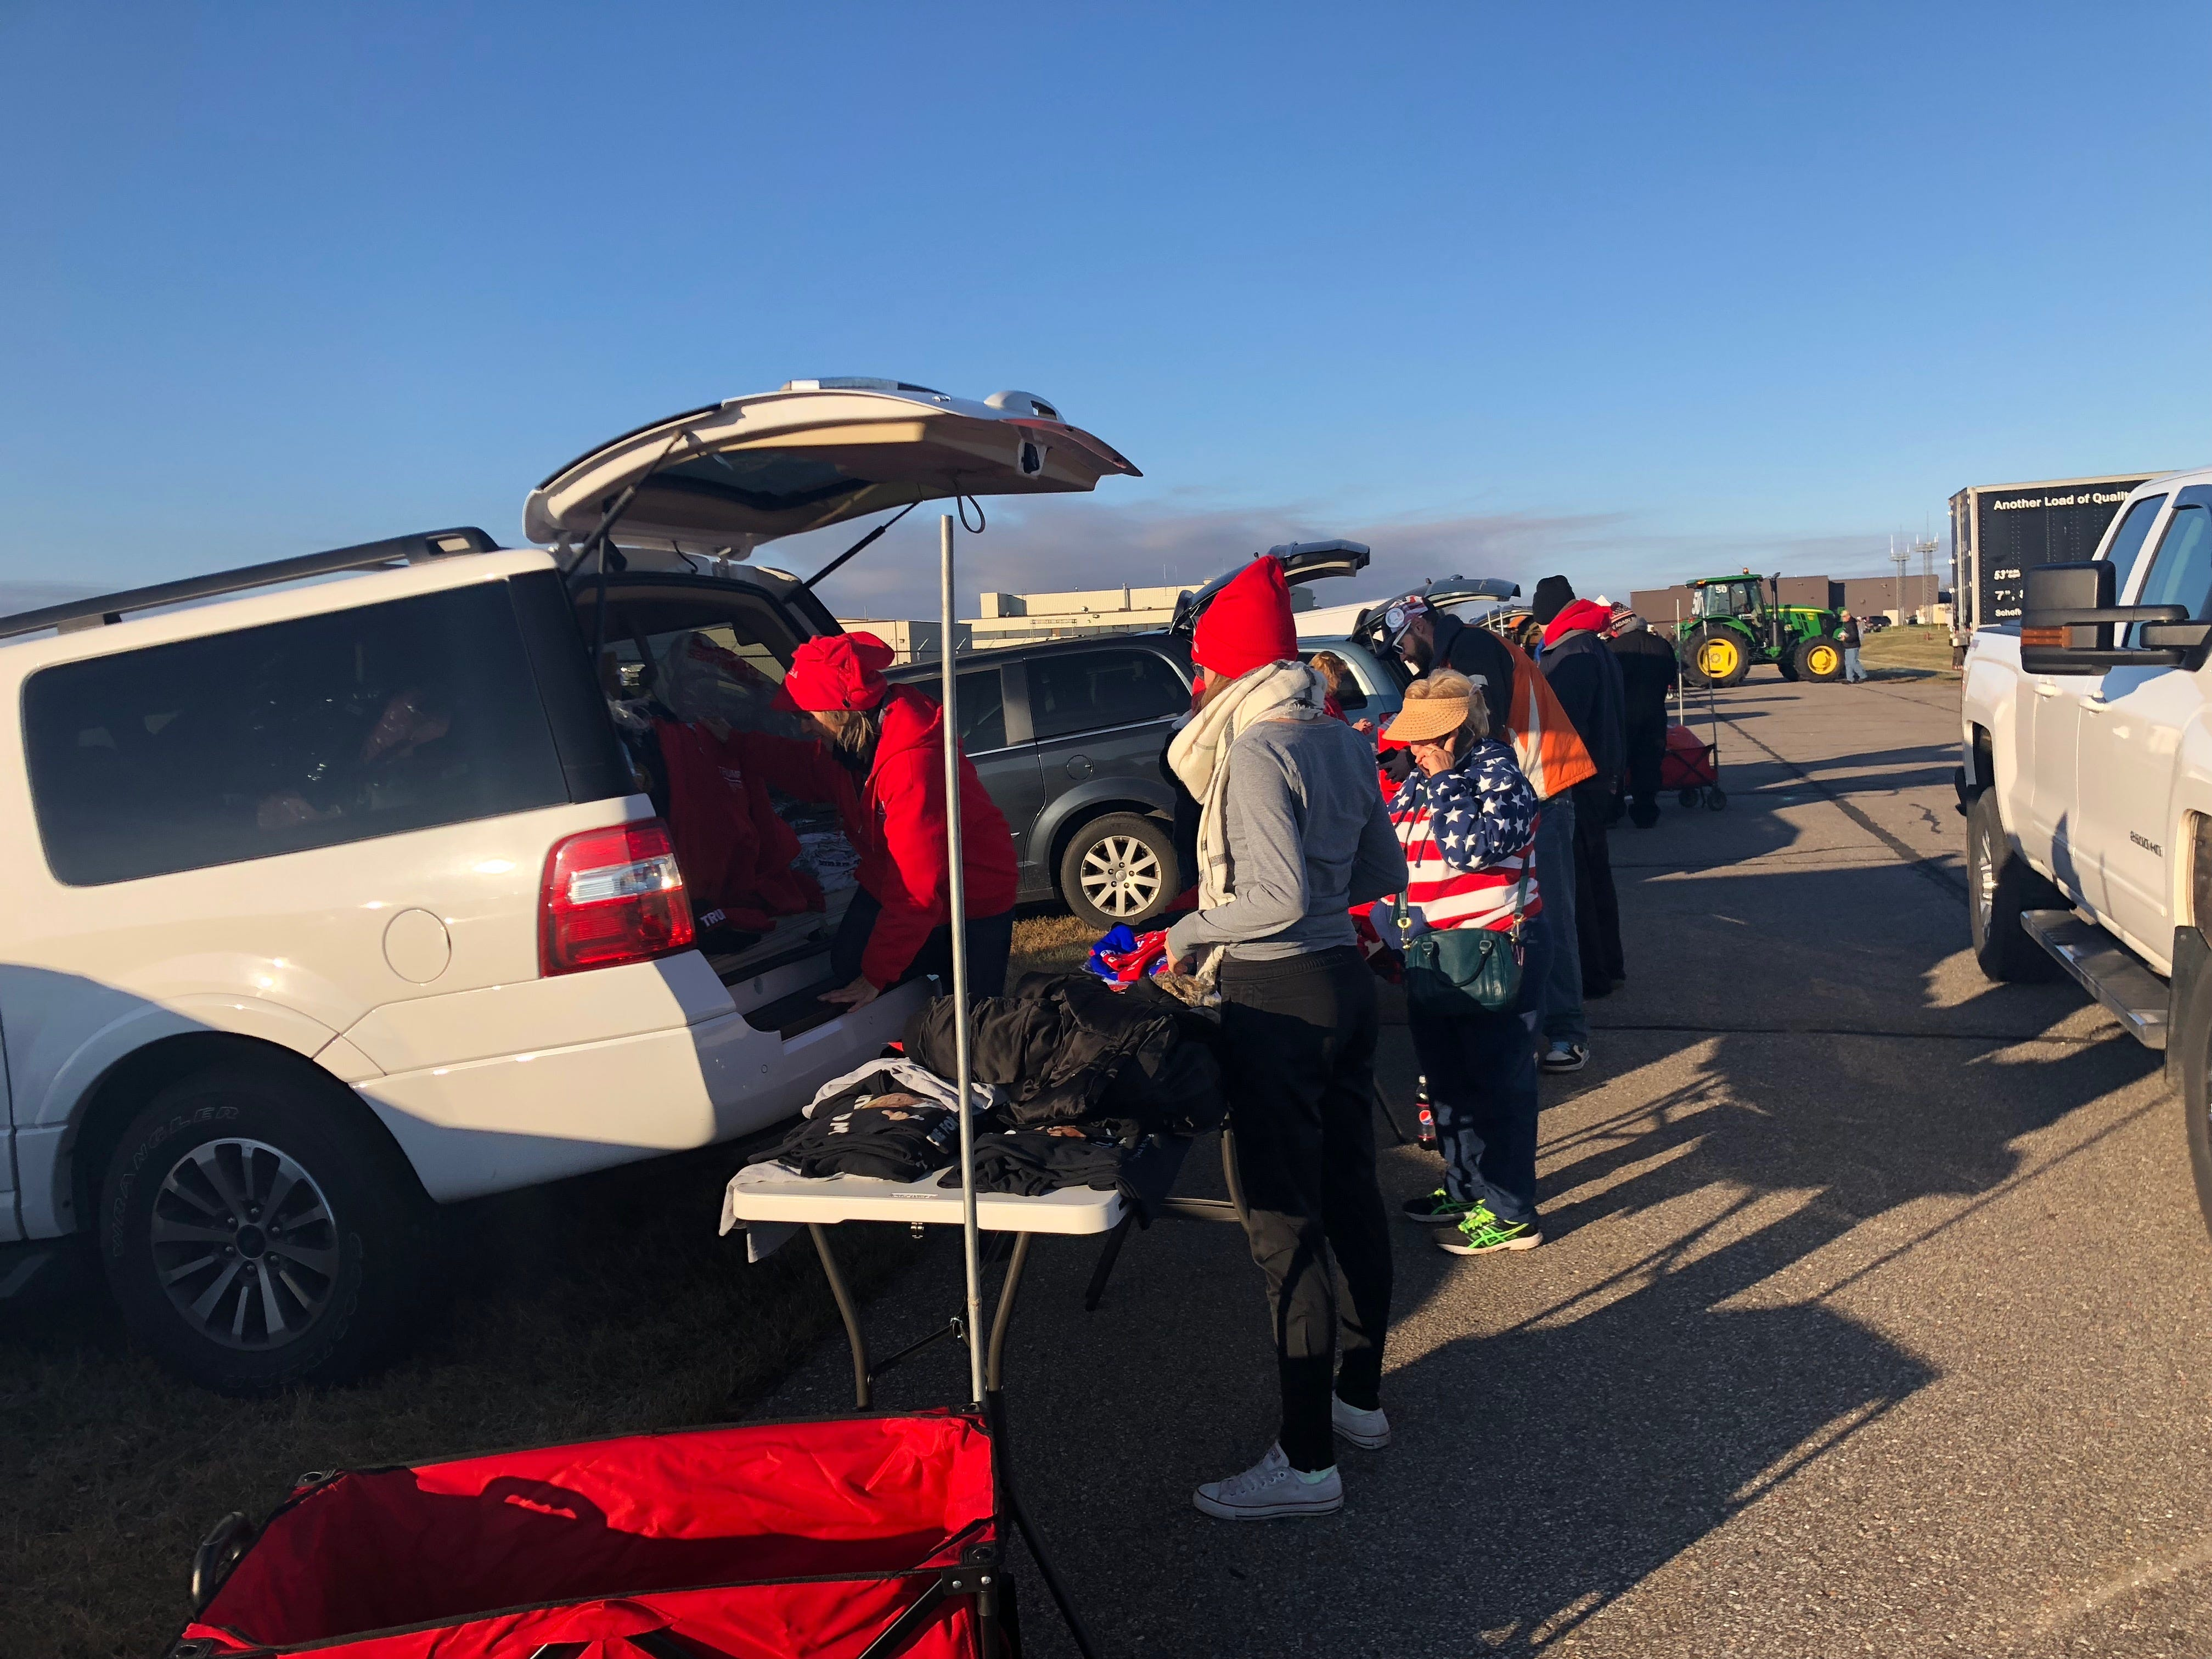 Vendors sent up Wednesday morning, filling their tables full of Donald Trump-themed clothing ahead of the evening rally at the Mosinee airport.